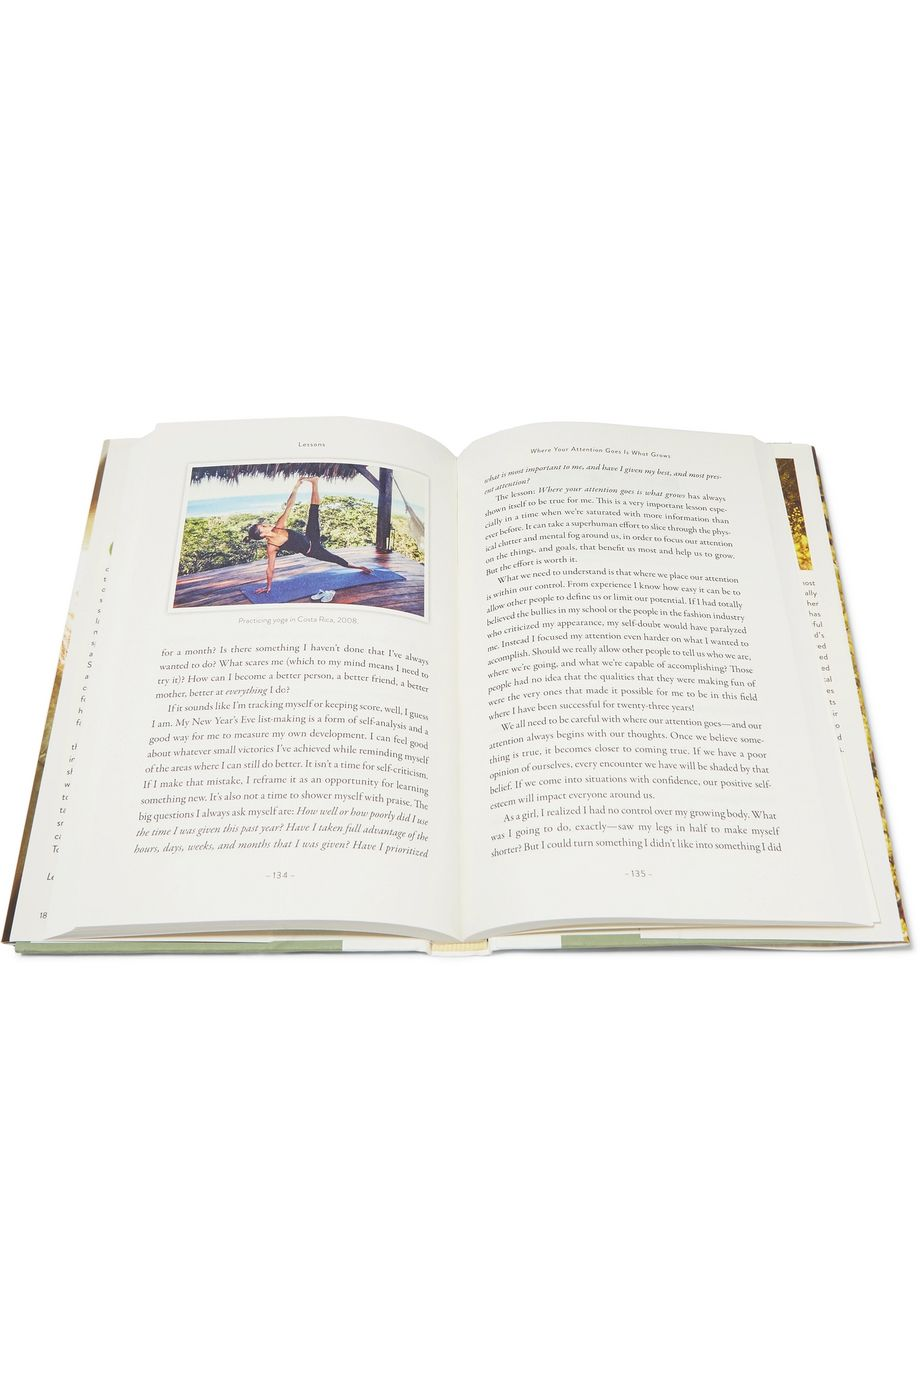 GISELE BÜNDCHEN Lessons: My Path to a Meaningful Life by Gisele Bündchen hardcover book